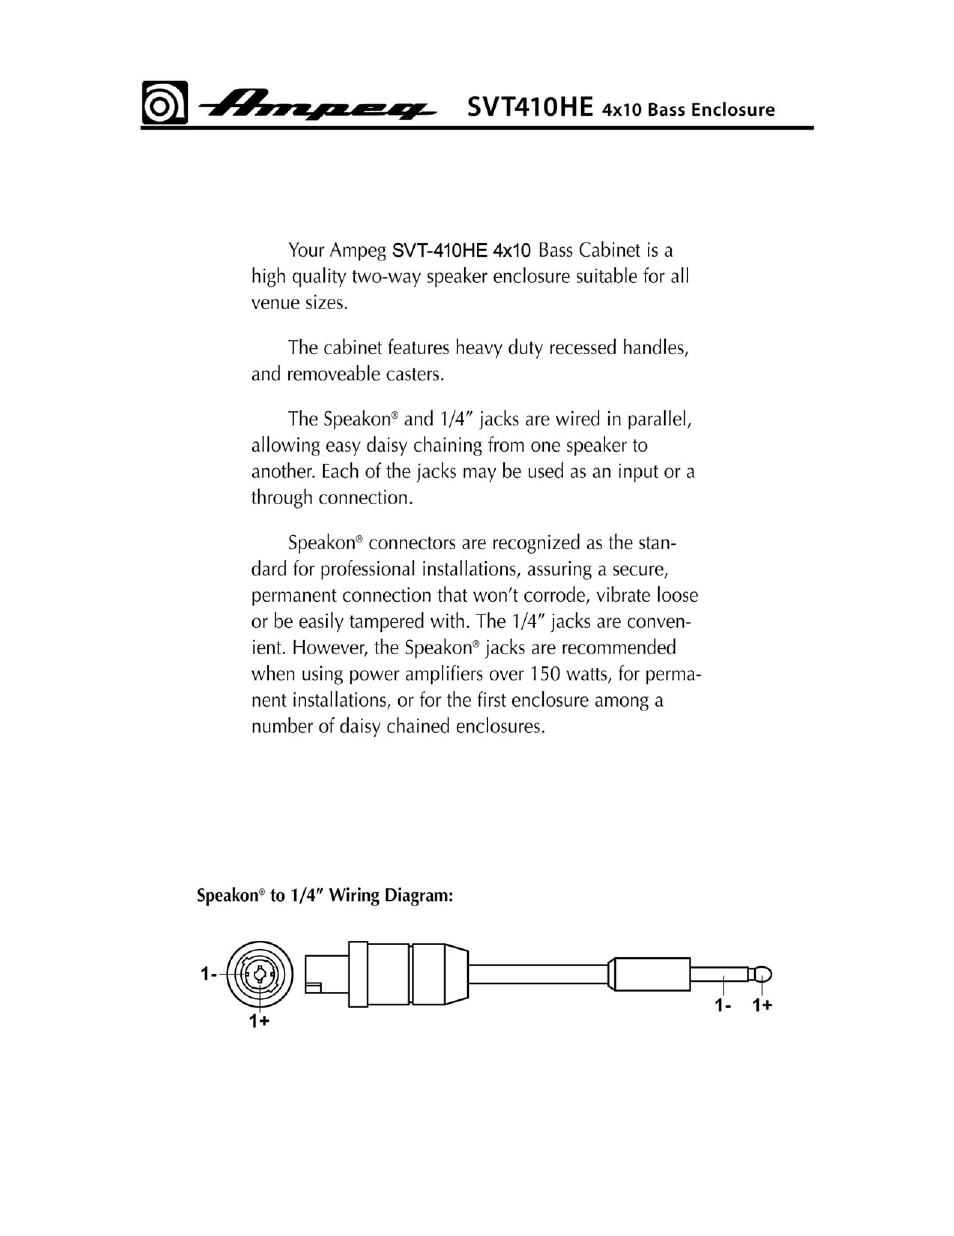 Svt410he Ampeg Svt 410he User Manual Page 2 4 Daisy Chain Speakers Wiring Diagram